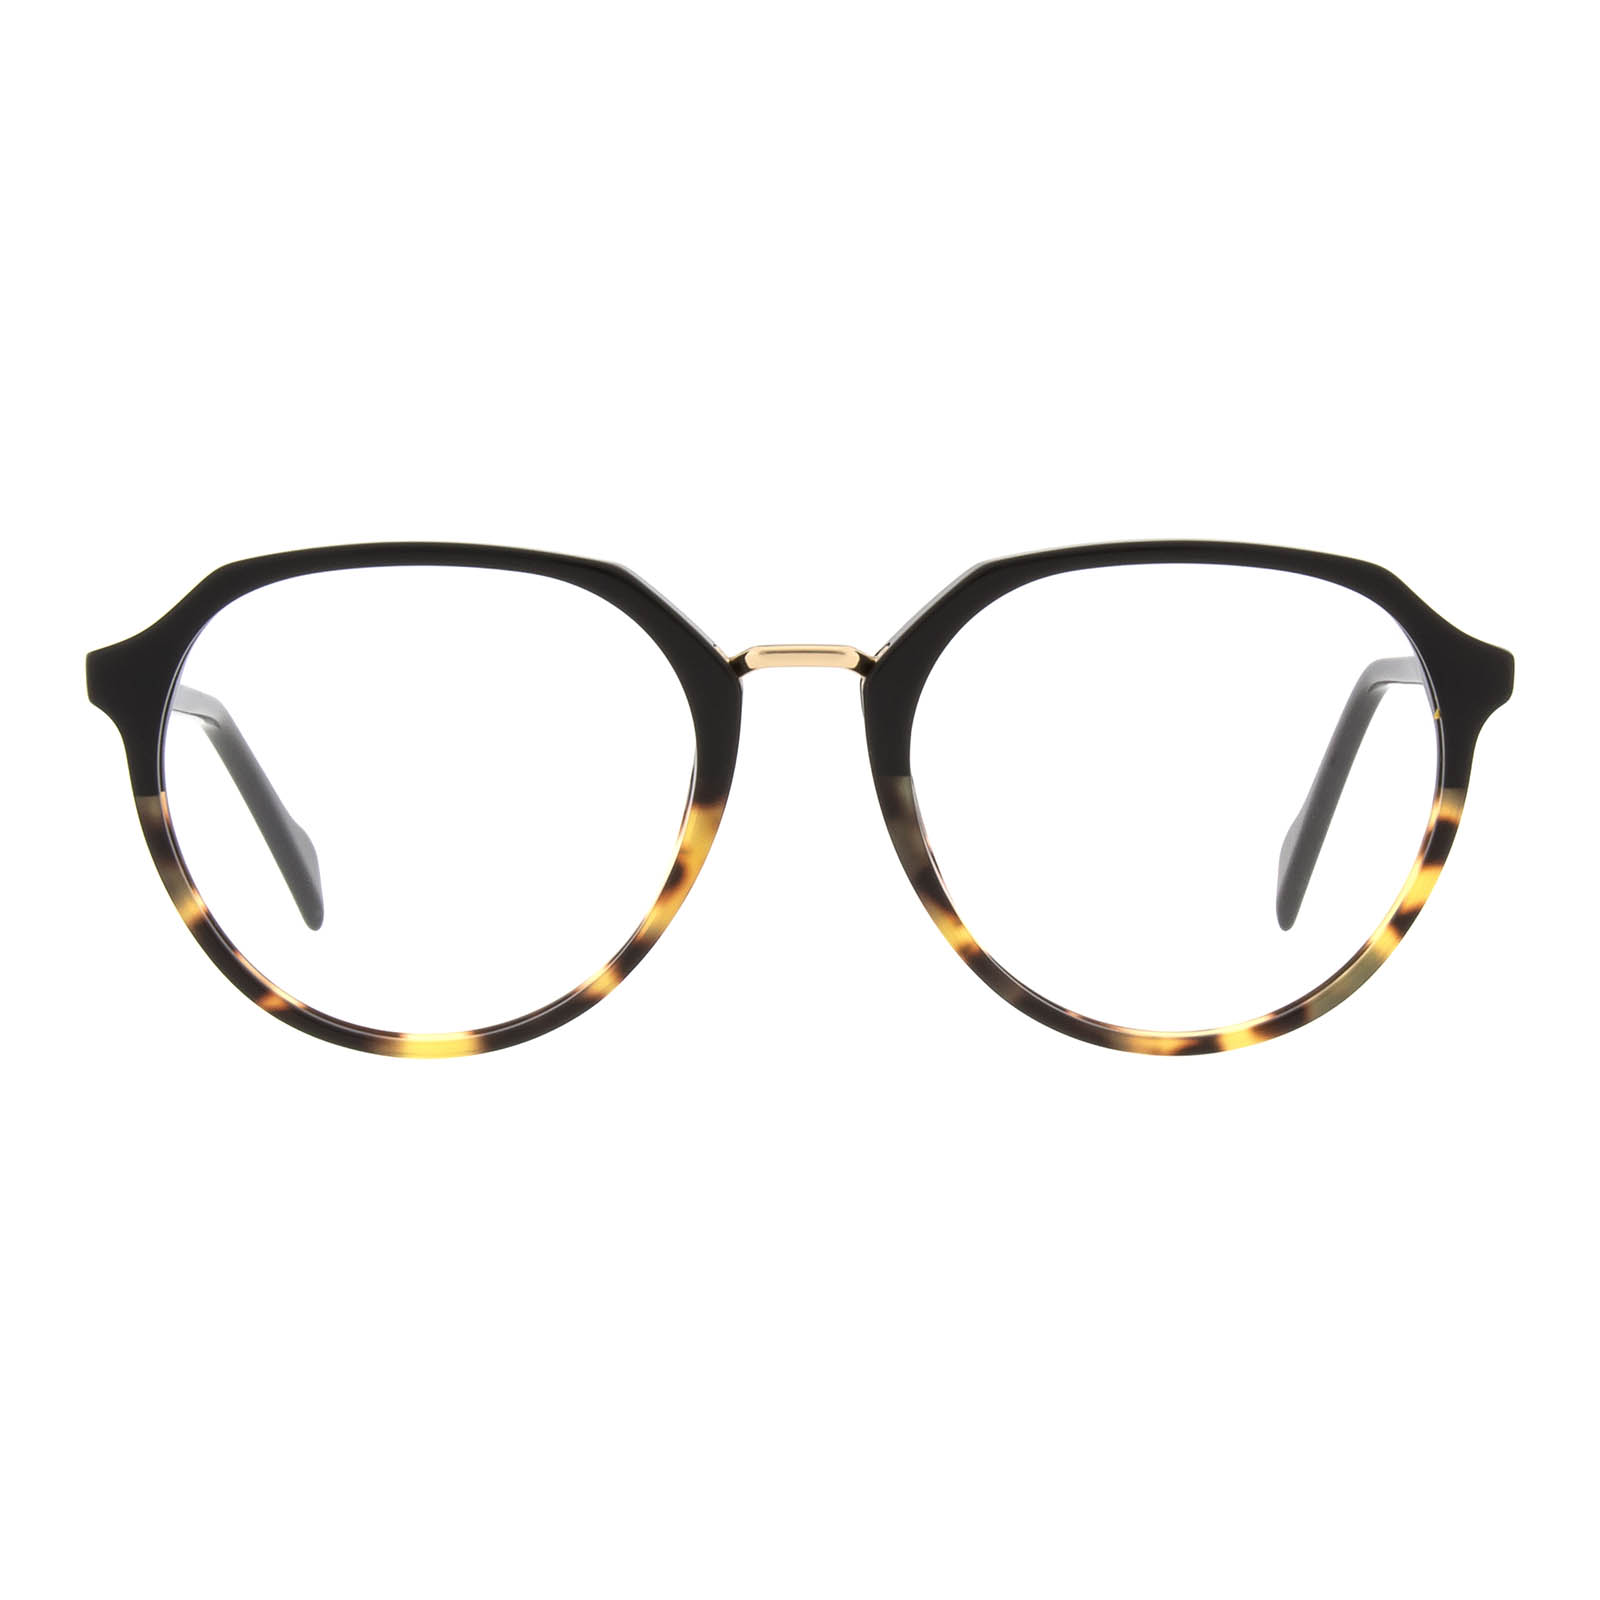 ANDY WOLF EYEWEAR_4595_05_front